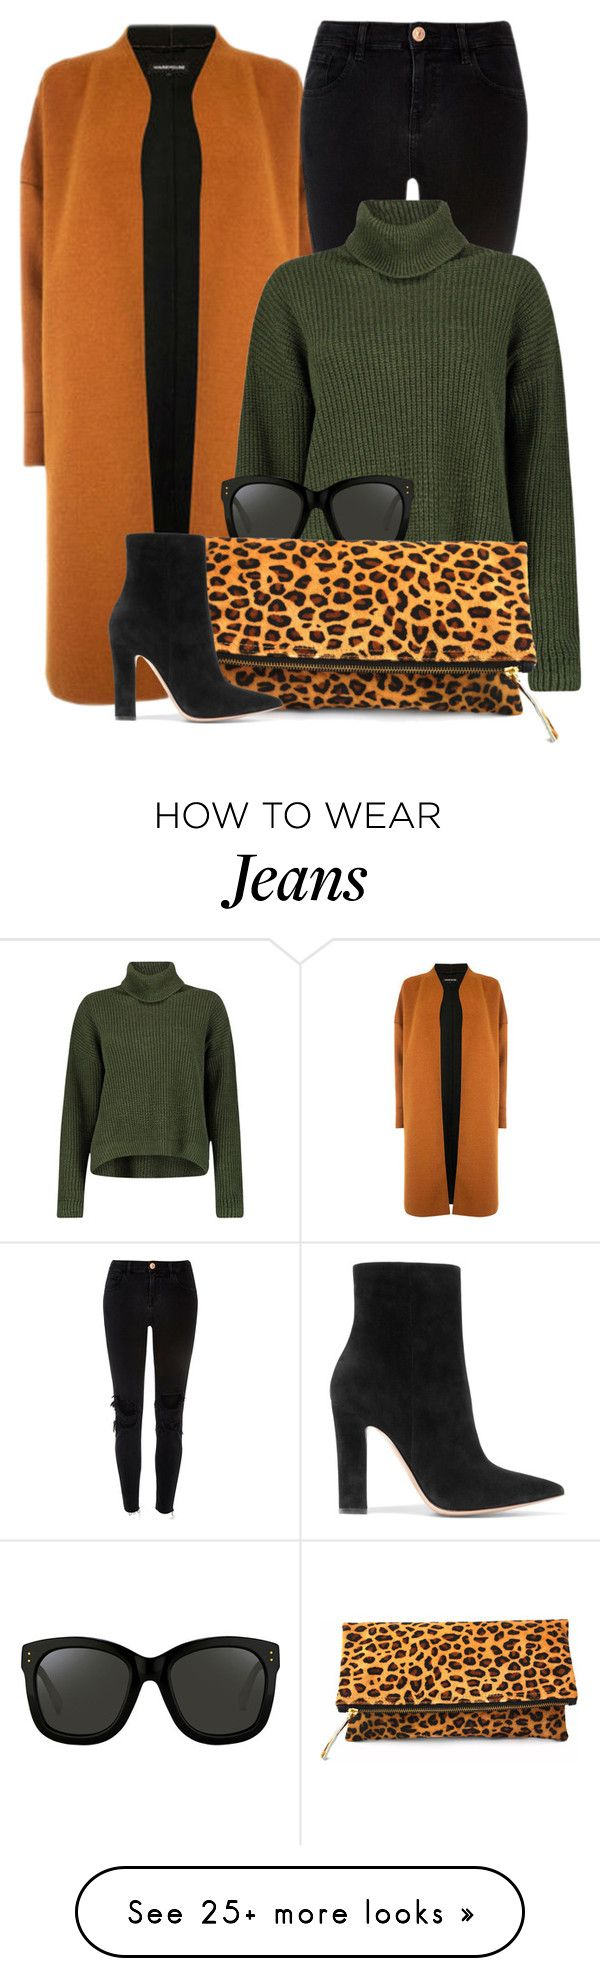 """My Style"" by mimicdesign on Polyvore featuring Warehouse, River Island, Boohoo, Linda Farrow, Gianvito Rossi, GREEN, LeopardPrint, leoprint and leopardbag"